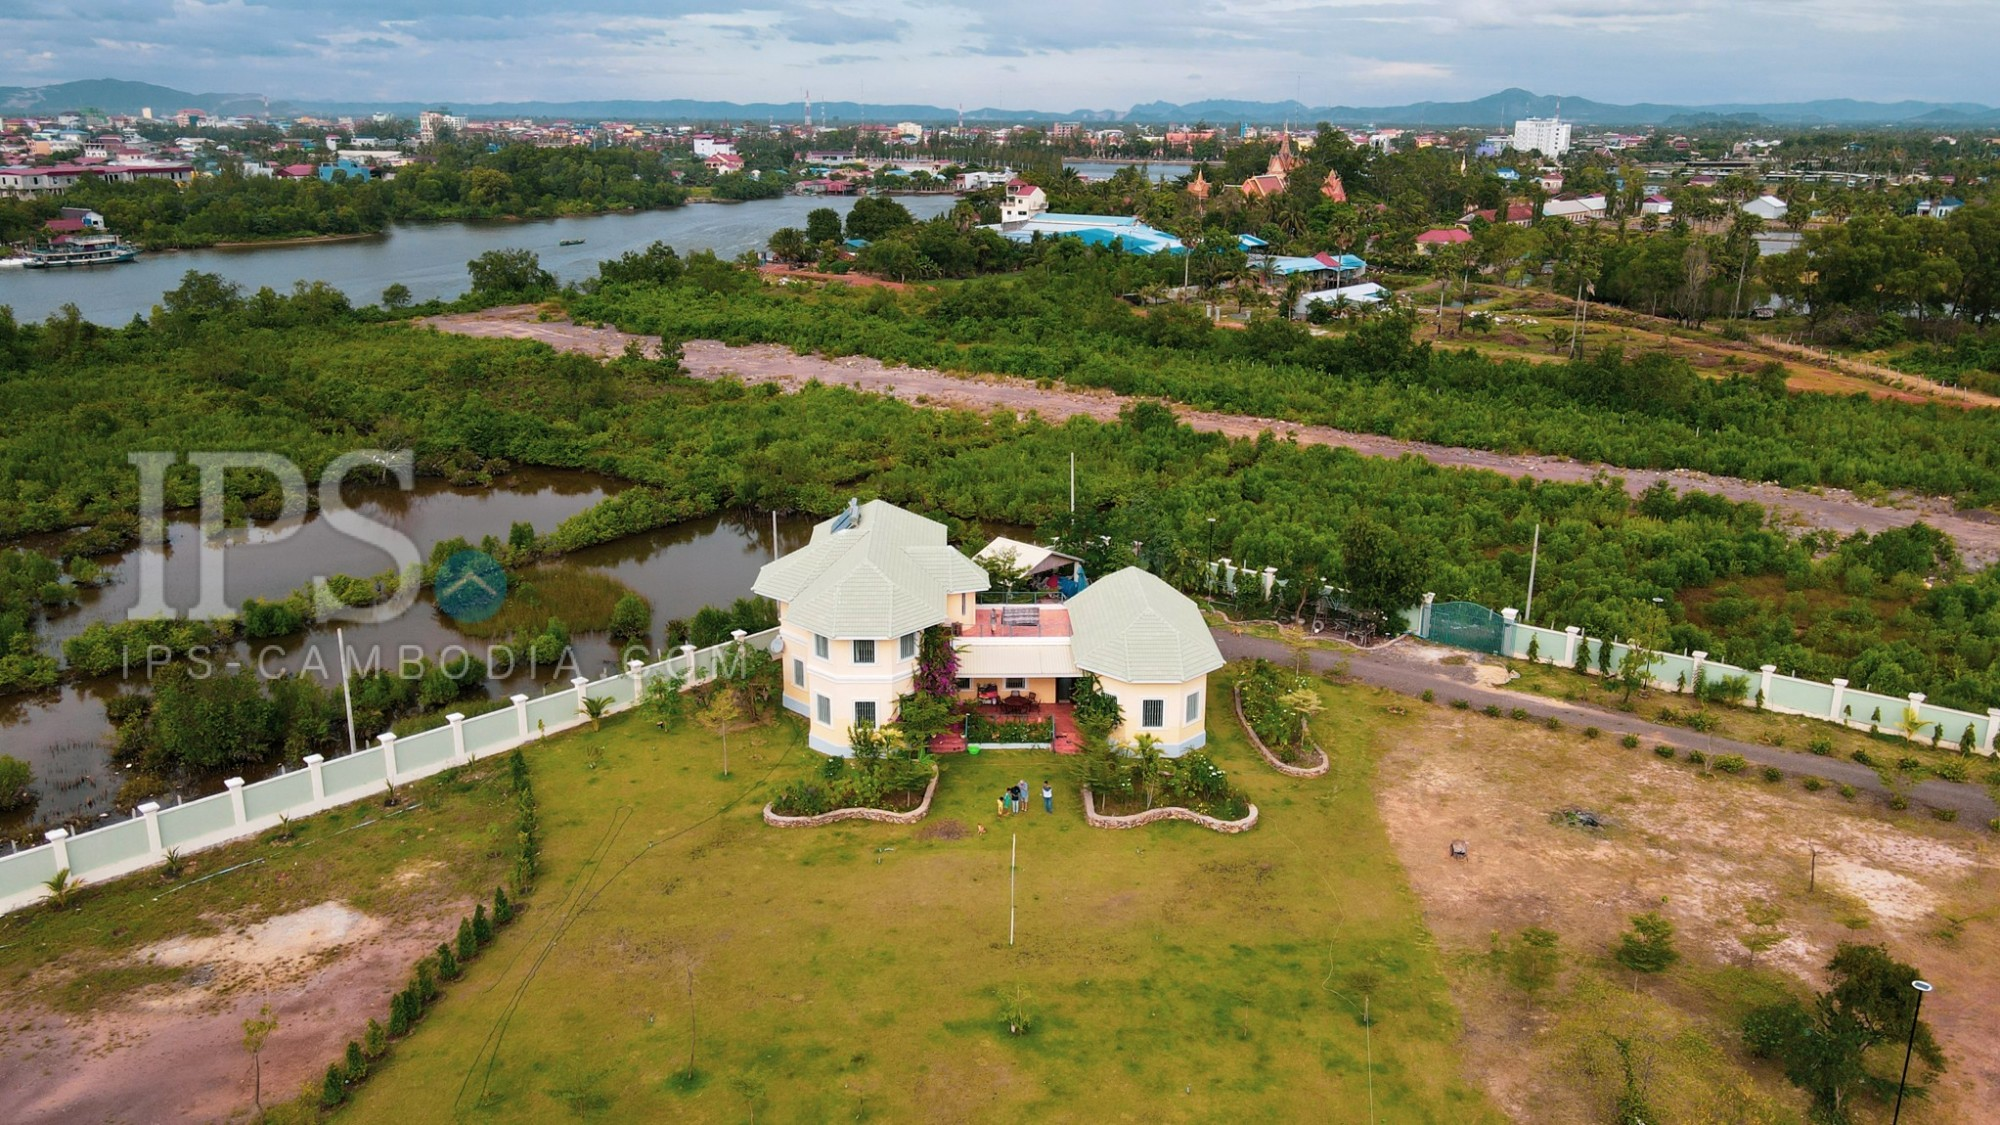 6186 Sqm River Front Property For Sale - Kampot Province